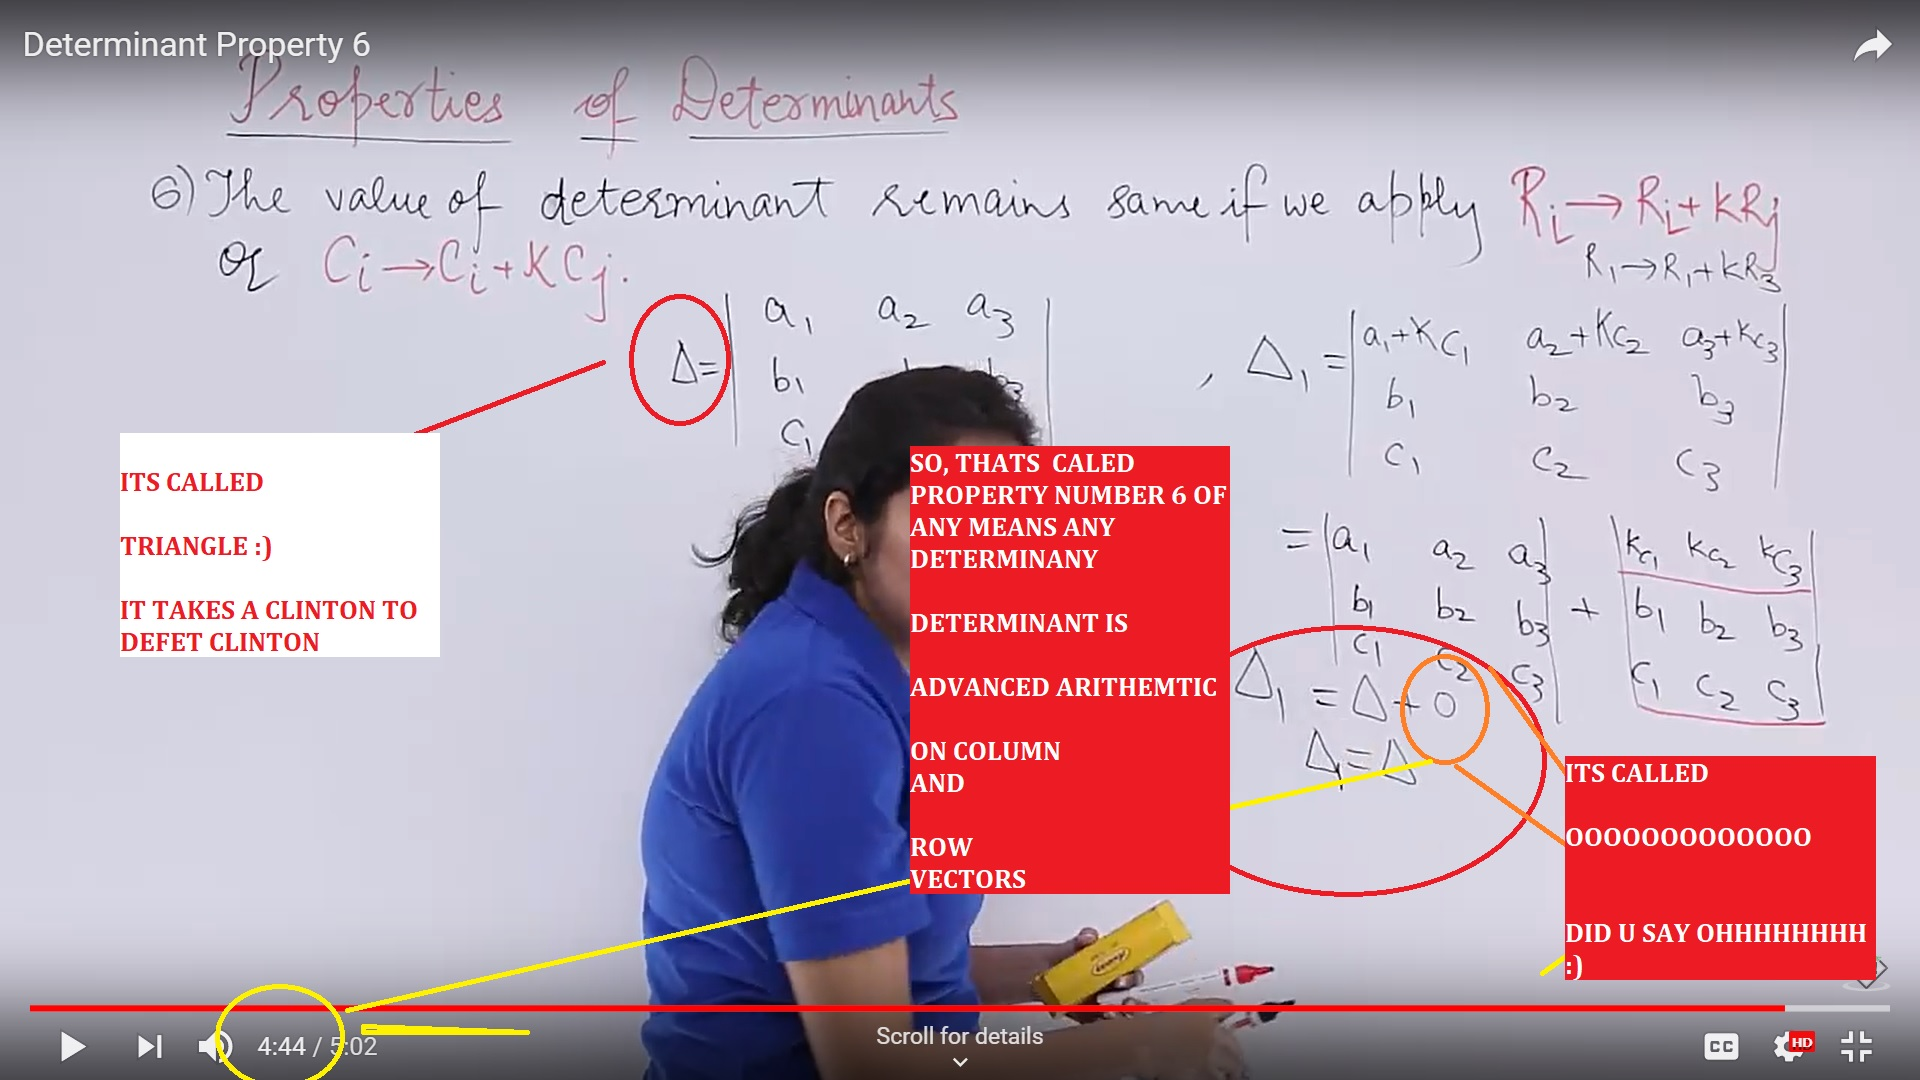 SO, THATS CALED PROPERTY NUMBER 6 OF ANY MEANS ANY DETERMINANT - AND A DETTERMINIANNT IS ADVANCED AIRTHEMTIC ON - ROW AND COLUMN VECTORS - REGARDS OLGA CLINTON MISHRA ARITHEMTCIS LESSONS - NUMBER 6